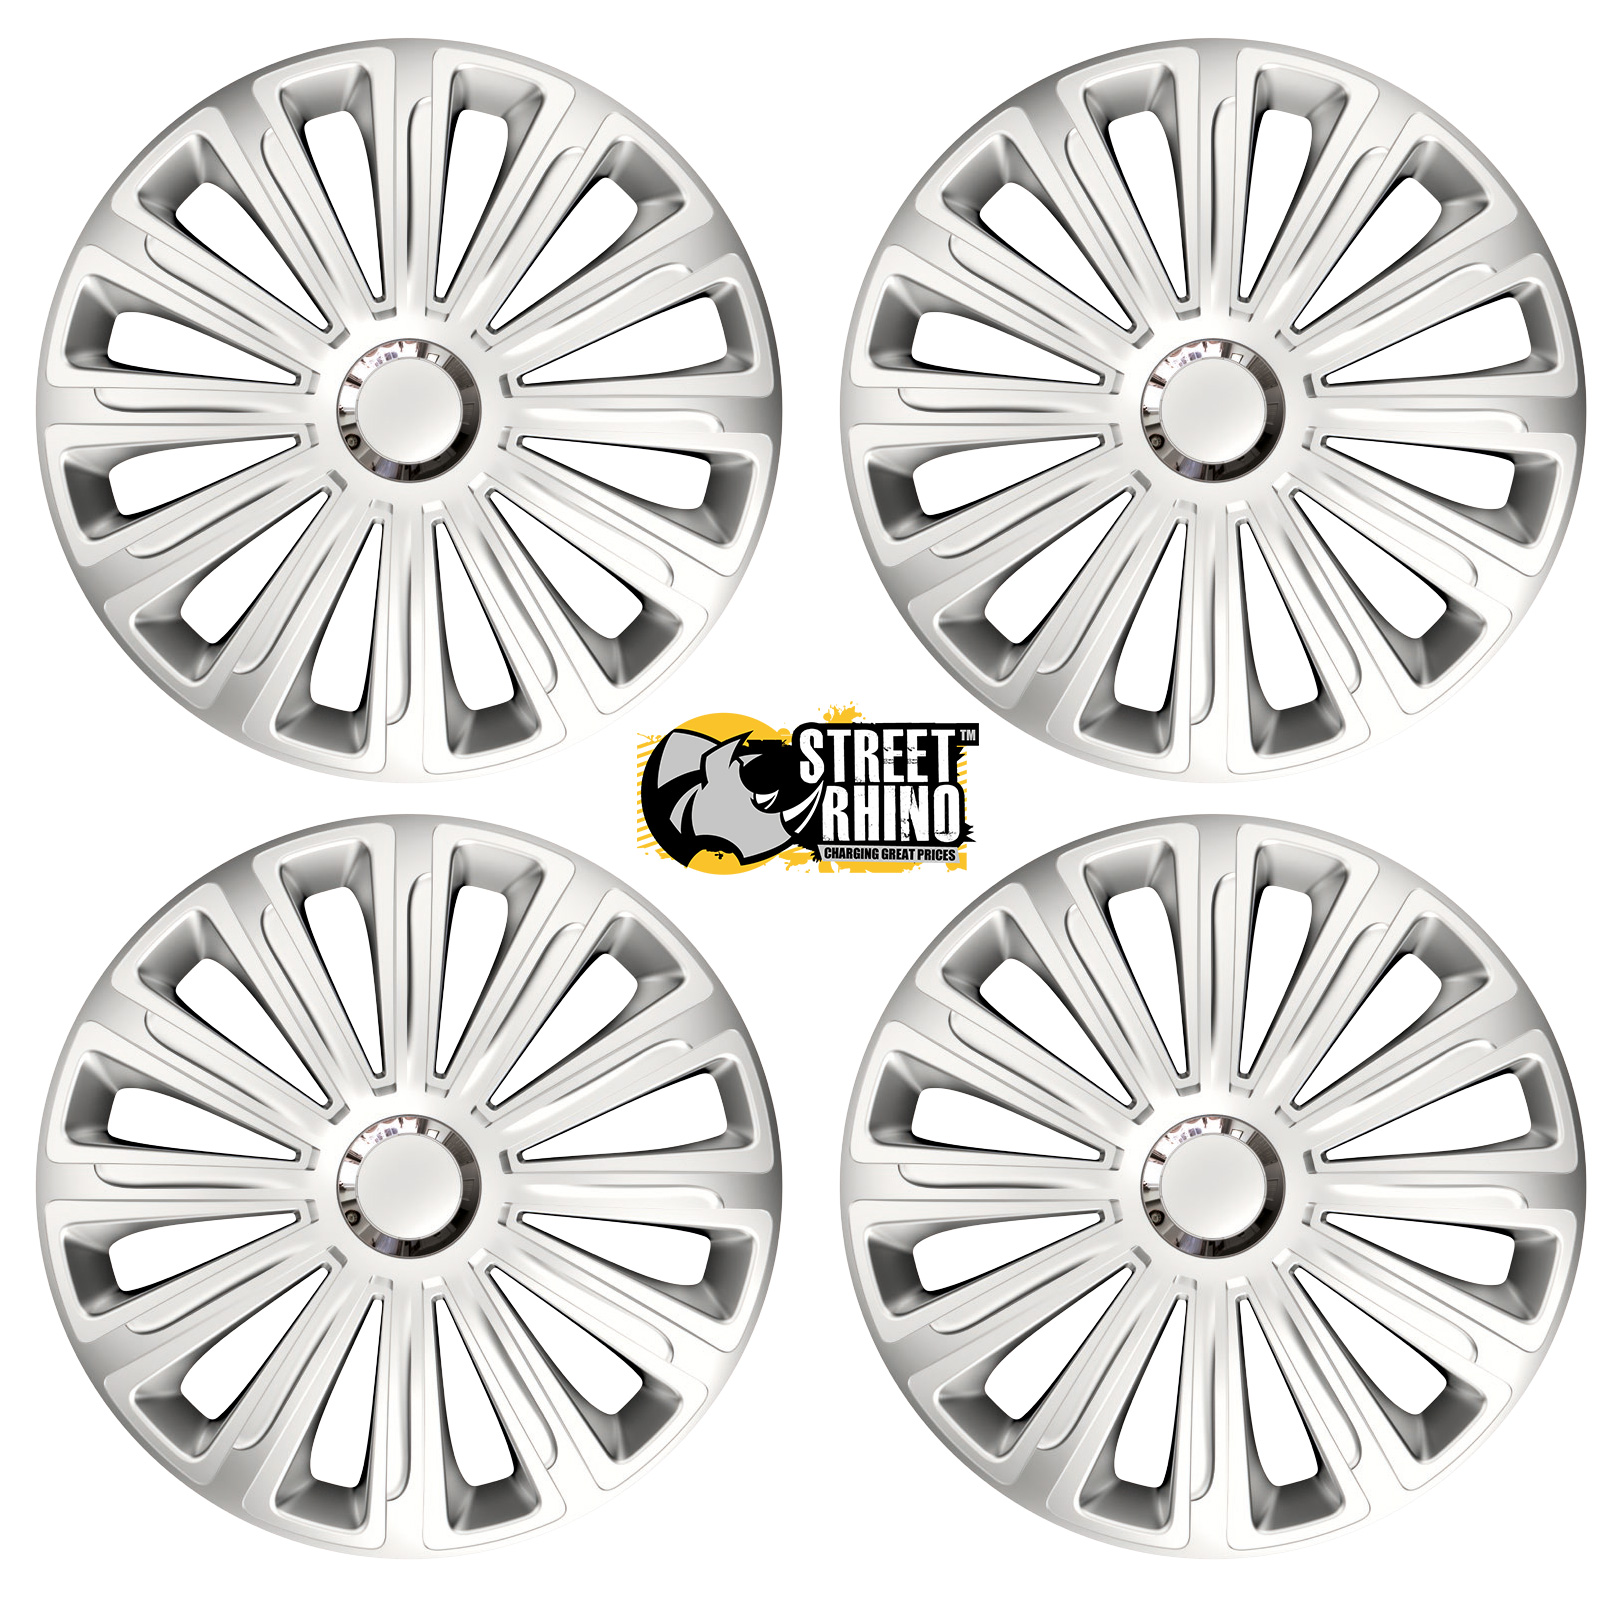 15 Universal Trend Rc Wheel Cover Hub Caps X4 Ideal For